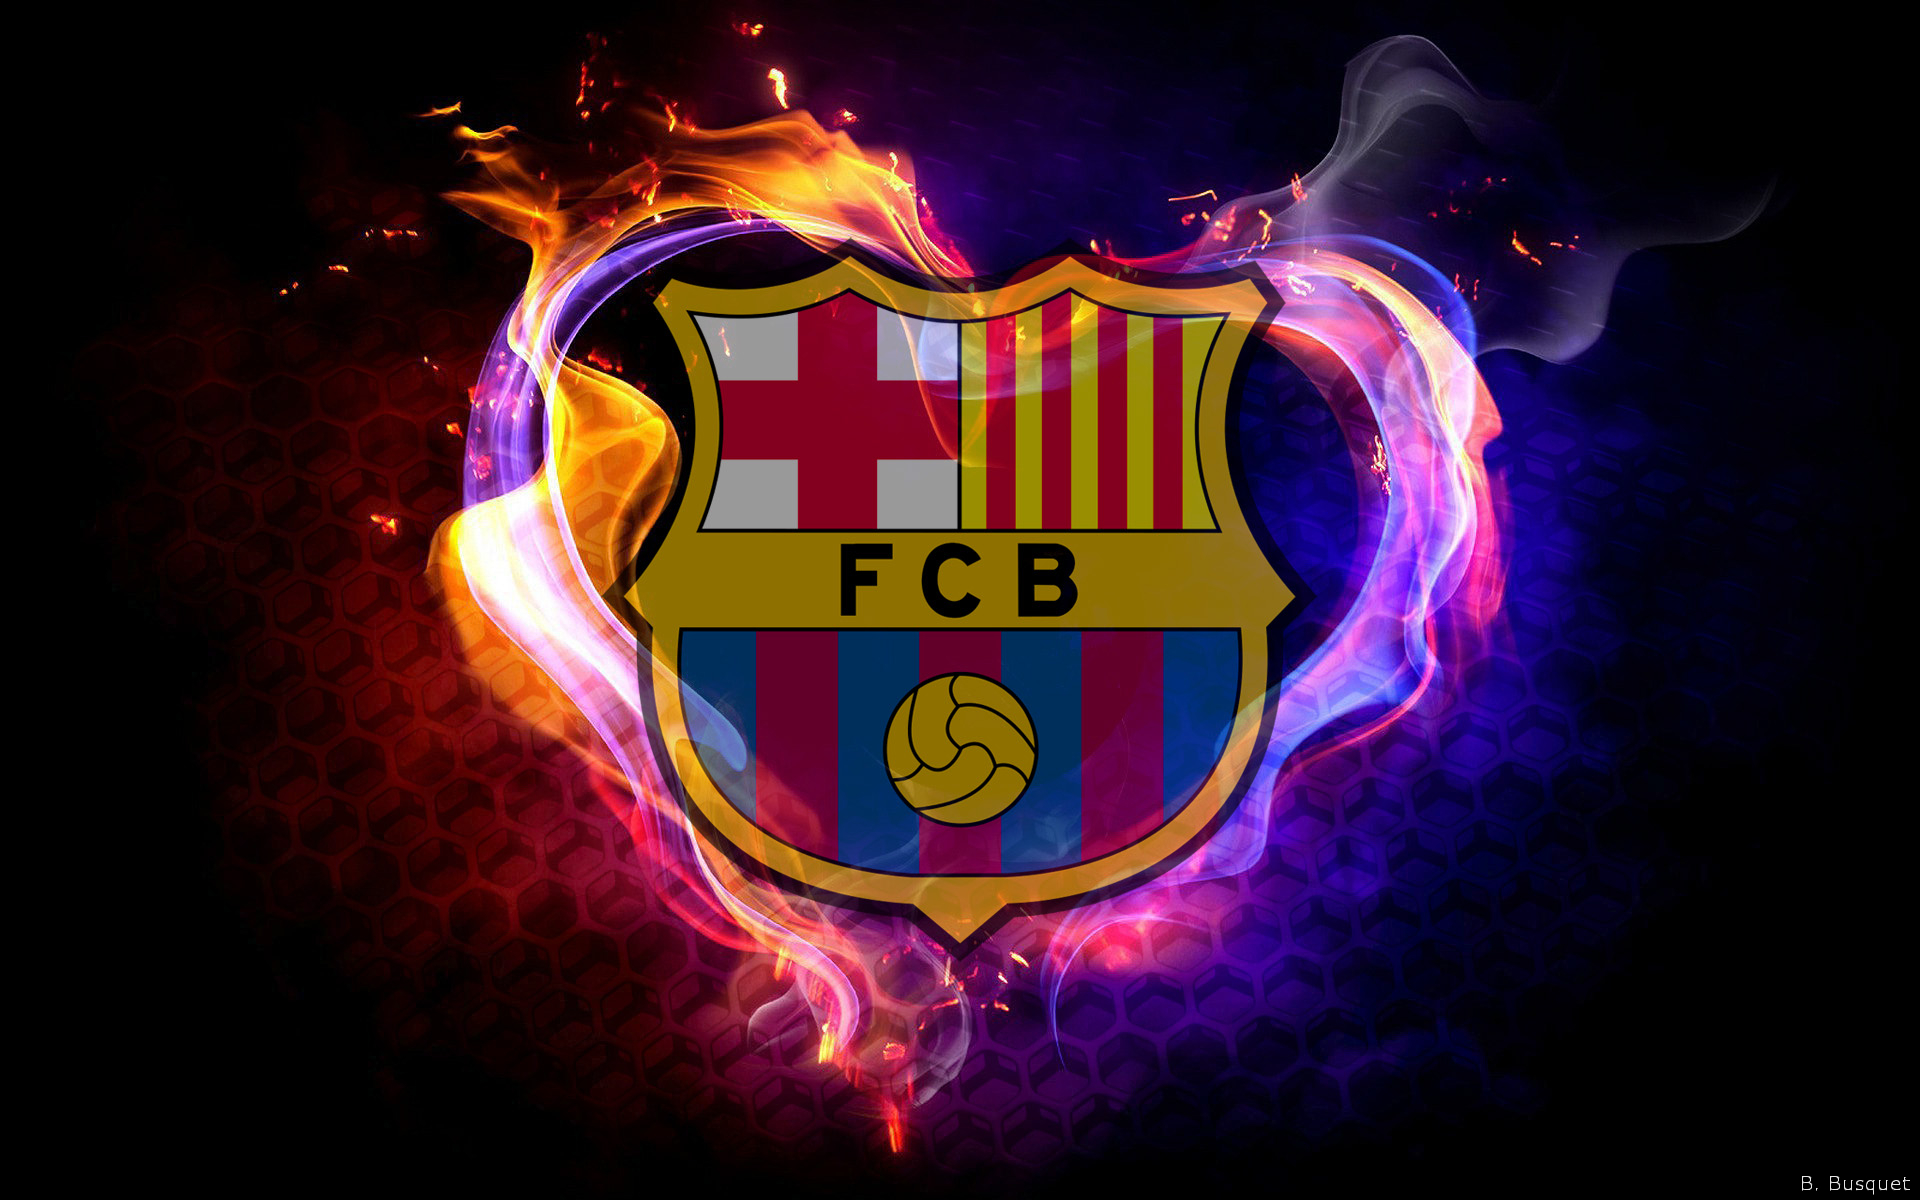 Barcelona-Football-Club-Football-HD-1920×1080-Fc-Barcelona-Wallp-wallpaper-wpc9202754